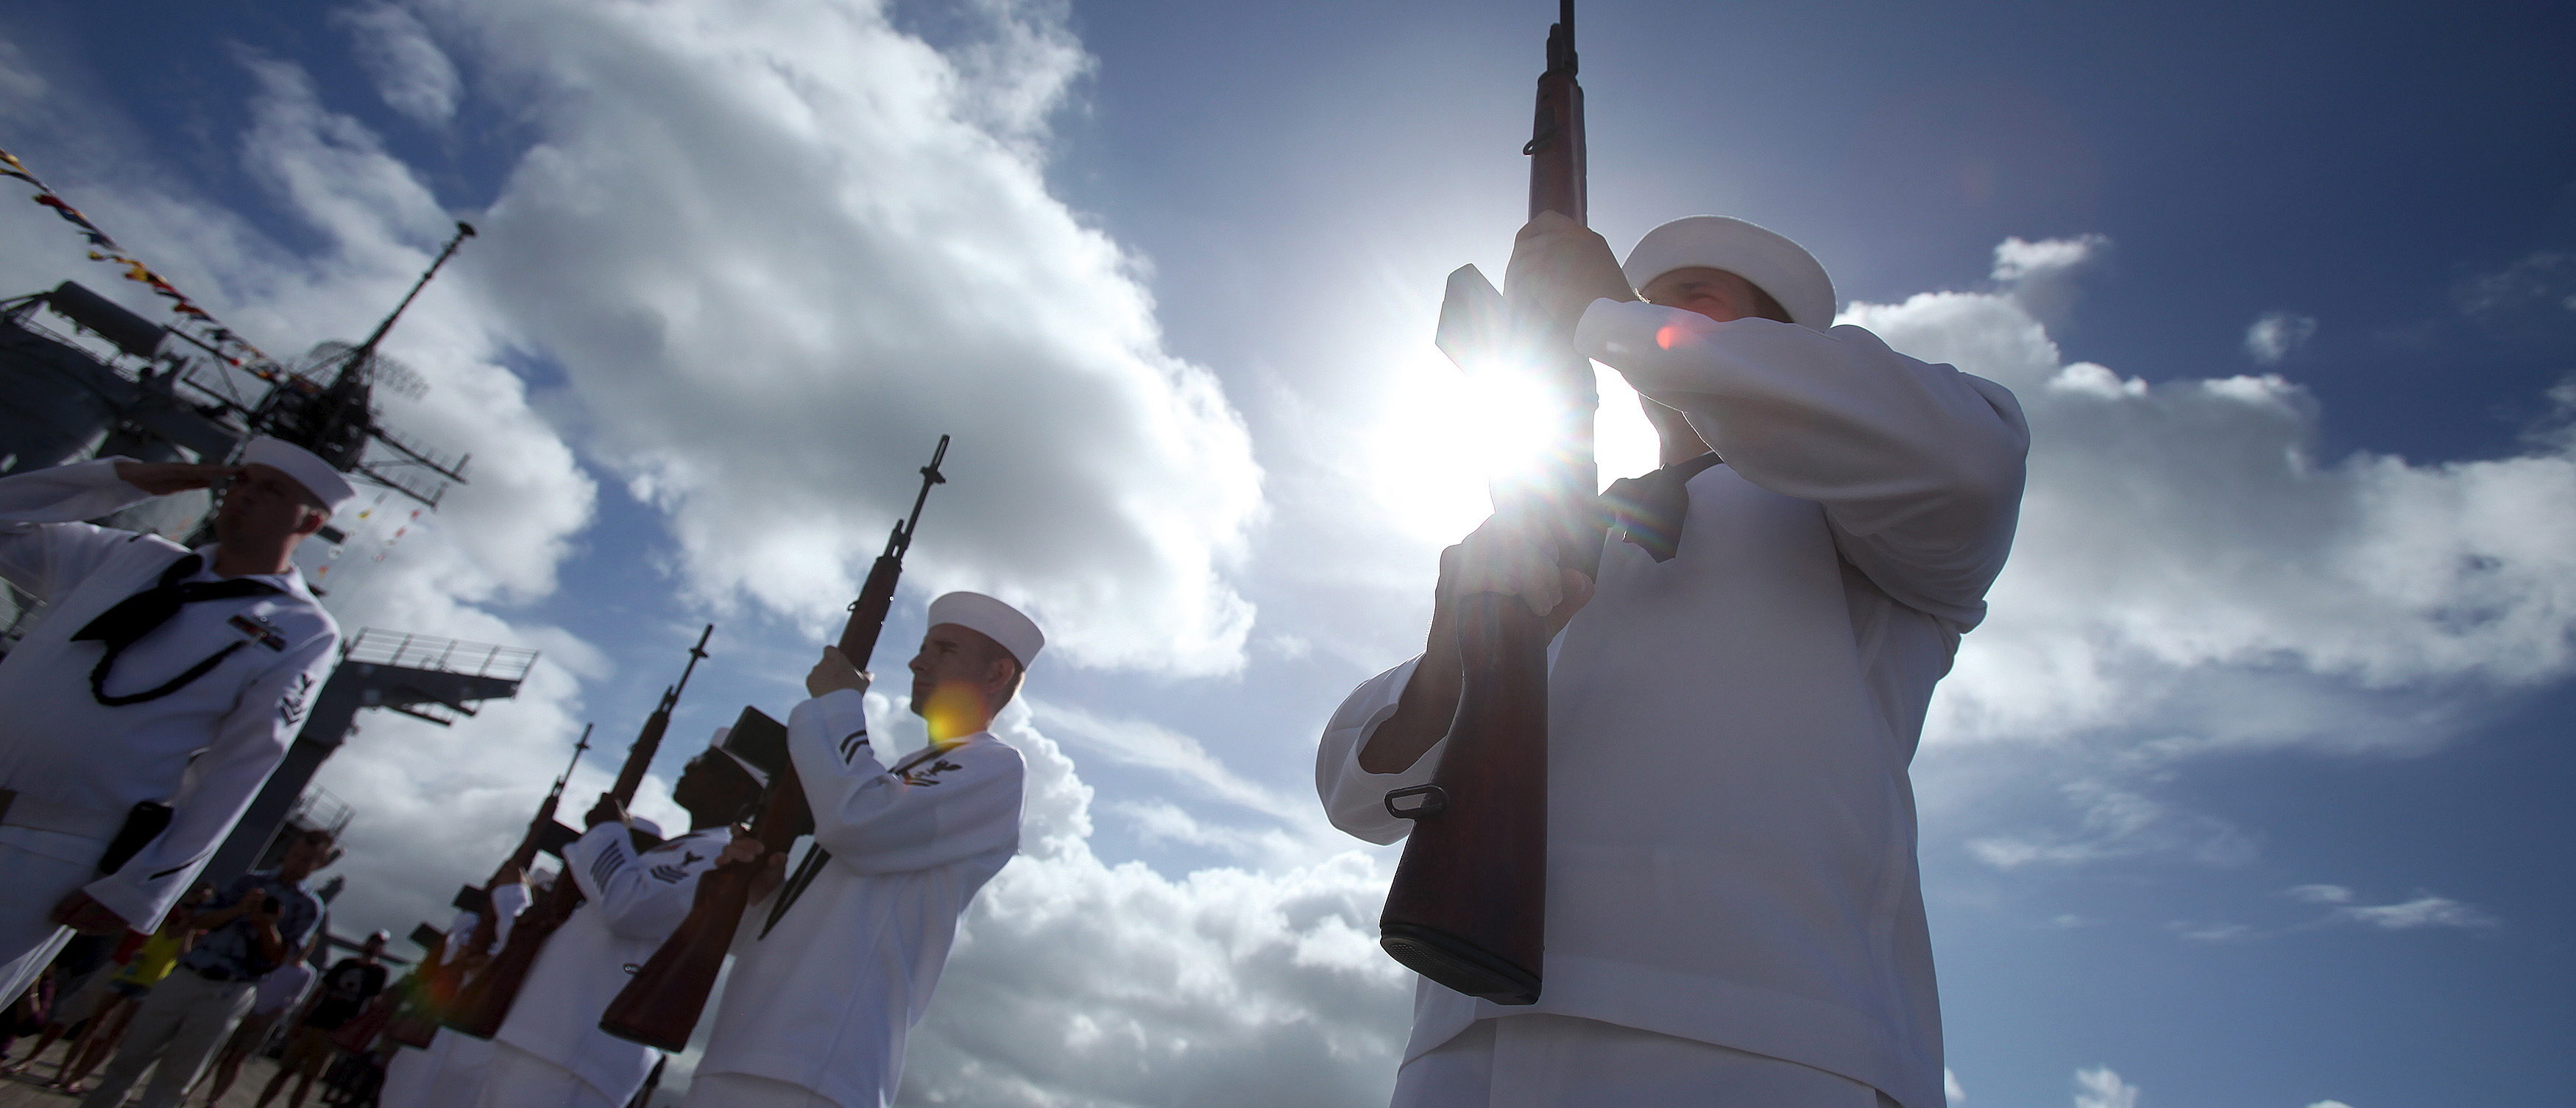 The U.S. Navy Rifle team stands at attention before the ceremony celebrating the 70th anniversary of  the end of World War II in the Pacific aboard the USS Battleship Missouri Memorial at Pearl Harbor in Honolulu, Hawaii, September 2, 2015. REUTERS/Hugh Gentry